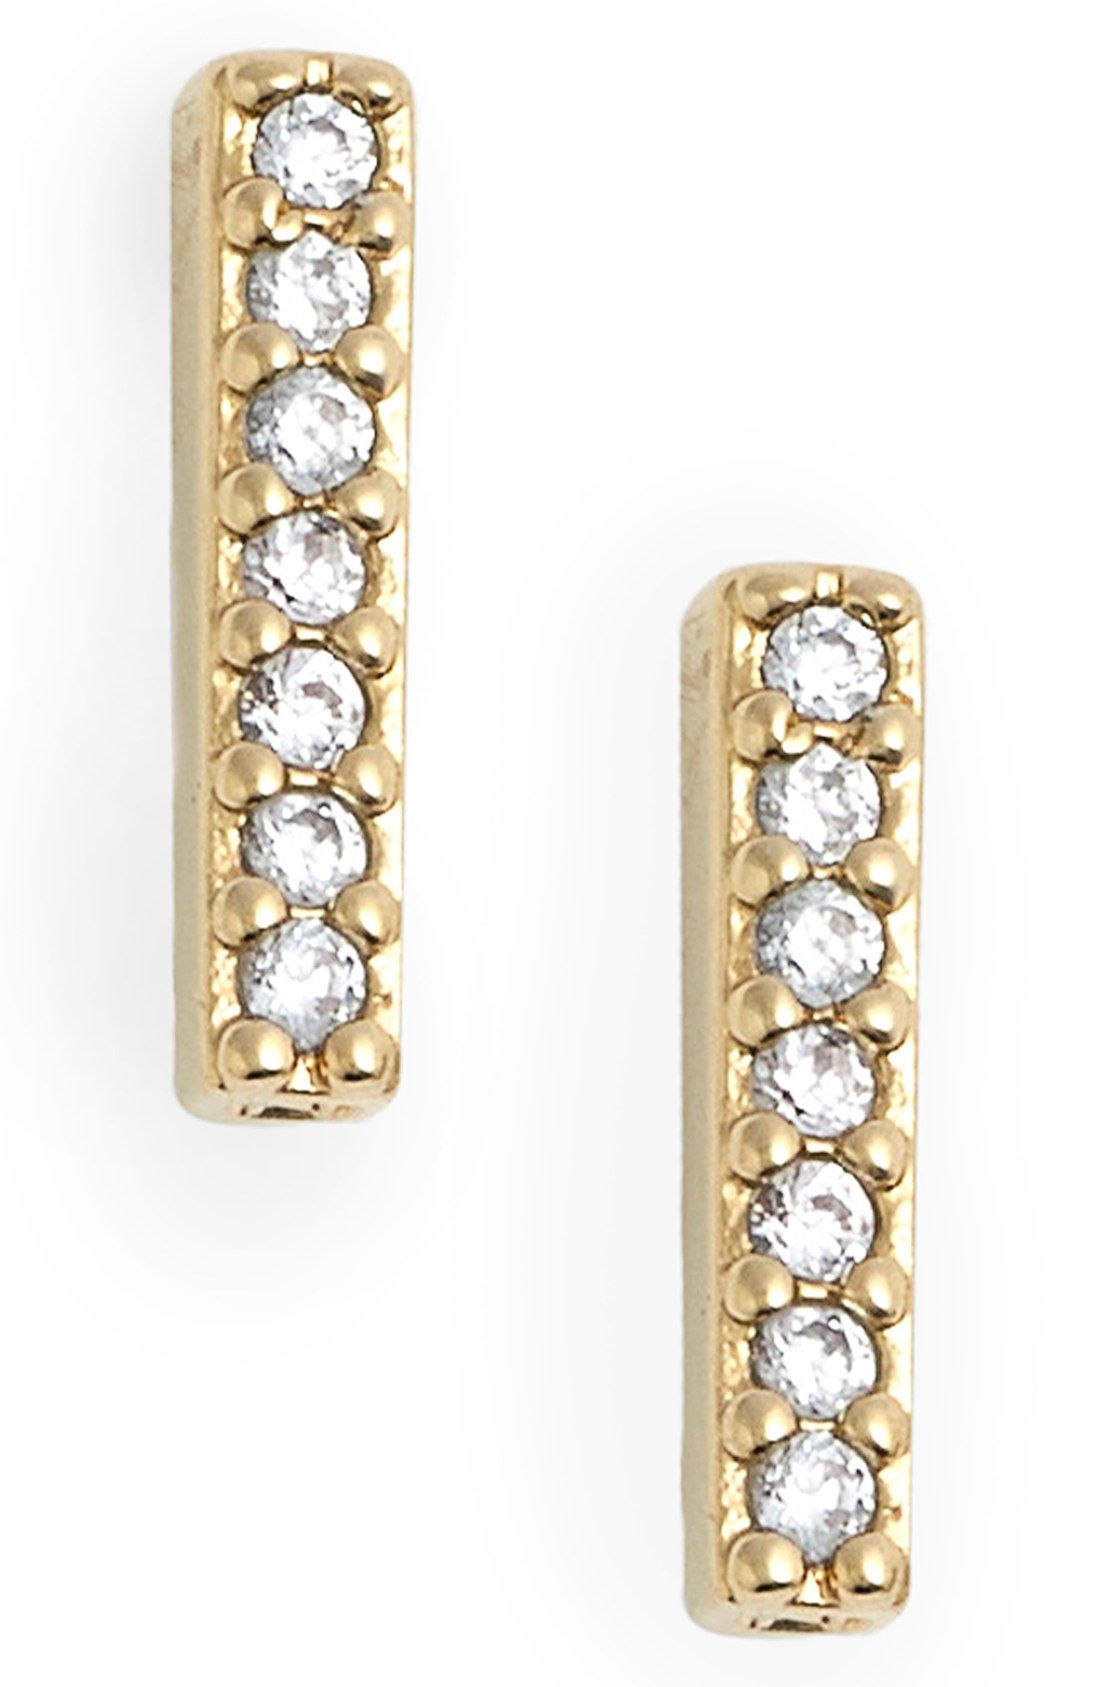 The Sparkling Crystals Of These Trendy Nadri Stud Earrings Really Shine  Against The Gold Polished Bars